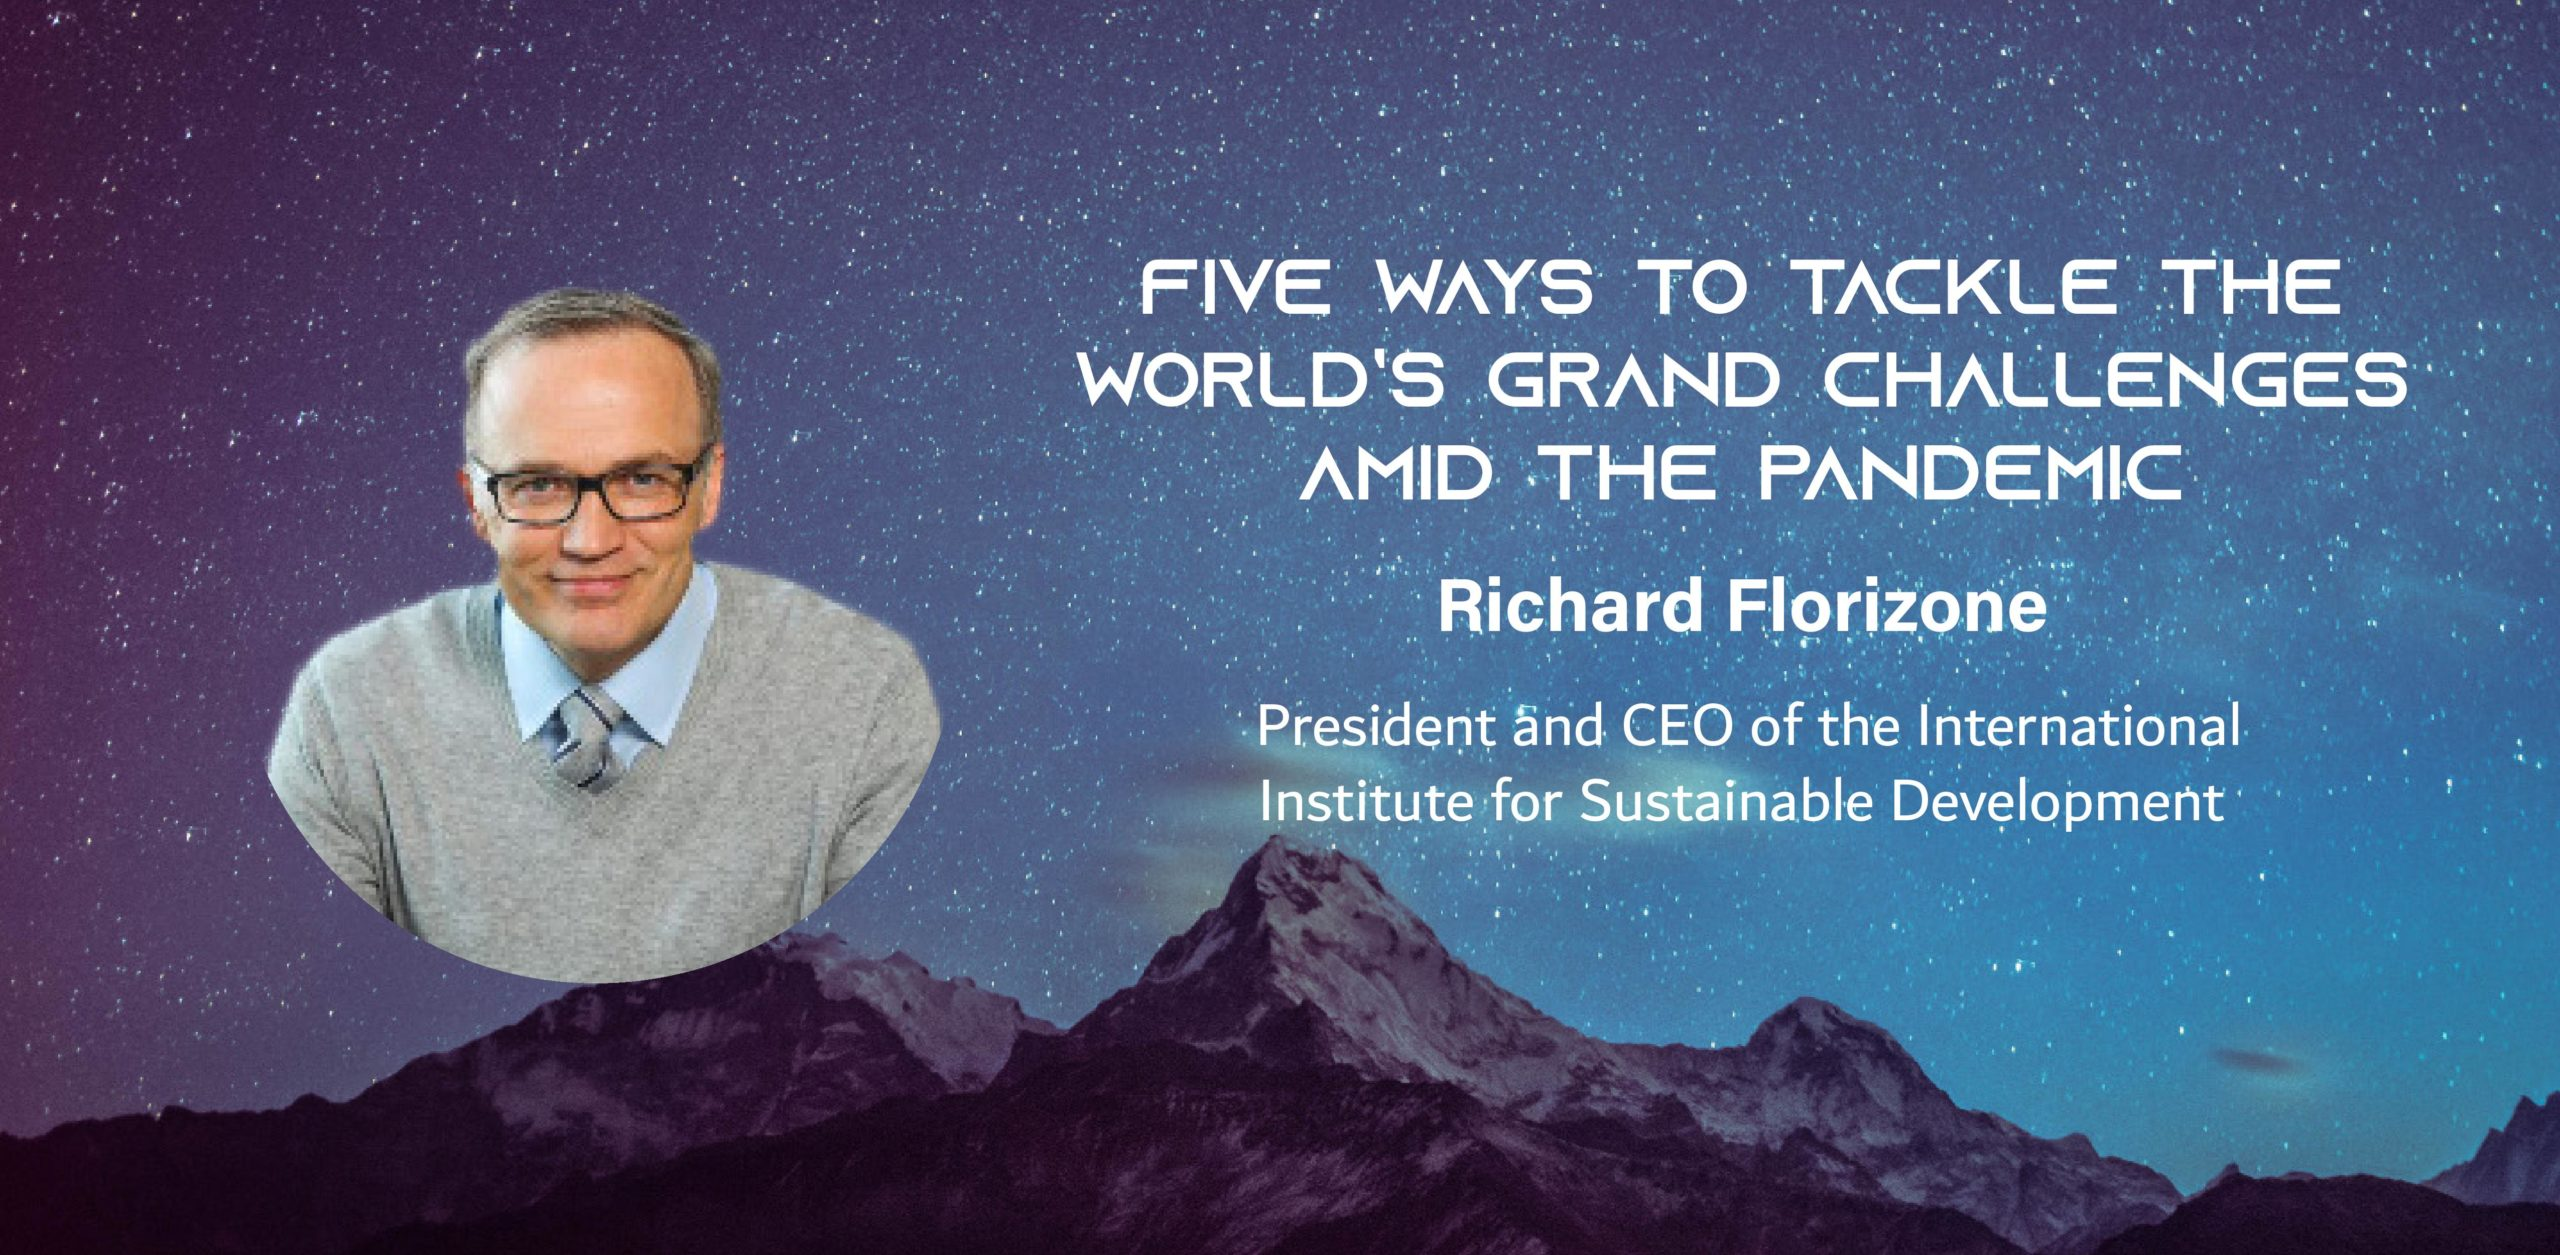 A photo of a man with glasses on a picture of a distand mountain with the text: Five Ways to Tackle the World's Grand Challenges Amid the Pandemic Richard Florizone President and CEO of the International Institute for Sustainable Development